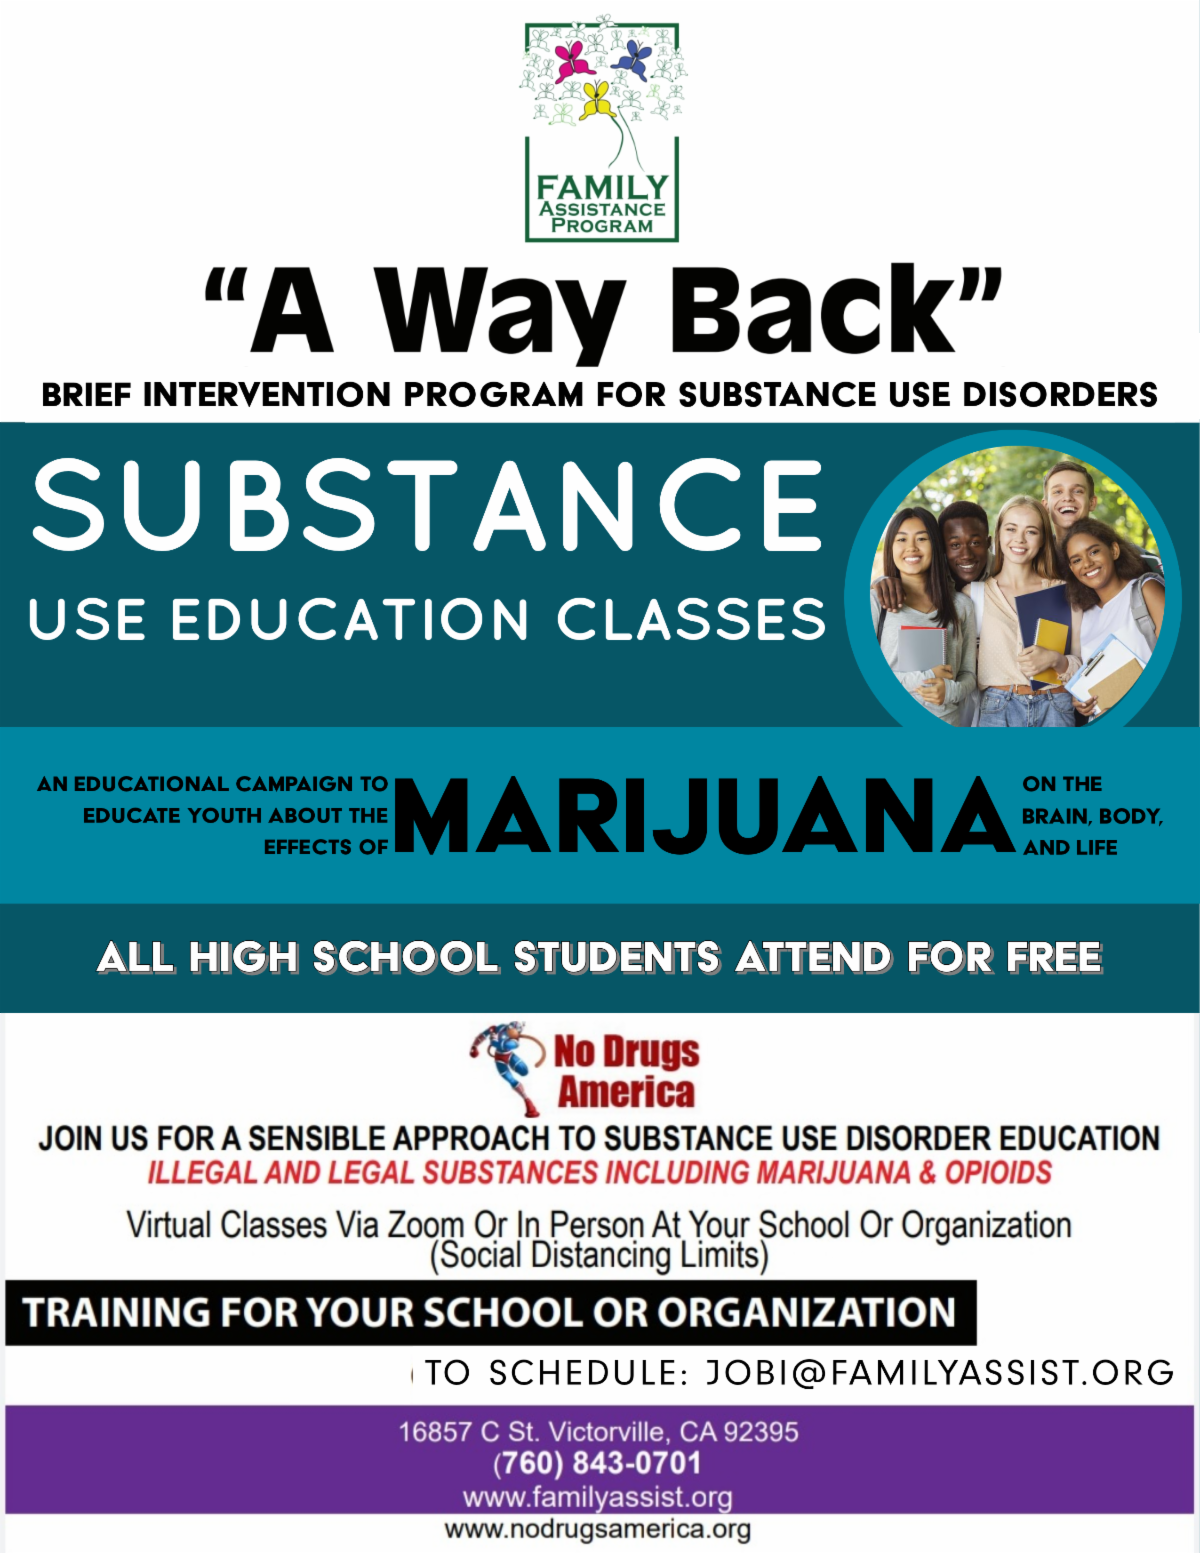 substance use education classes ad